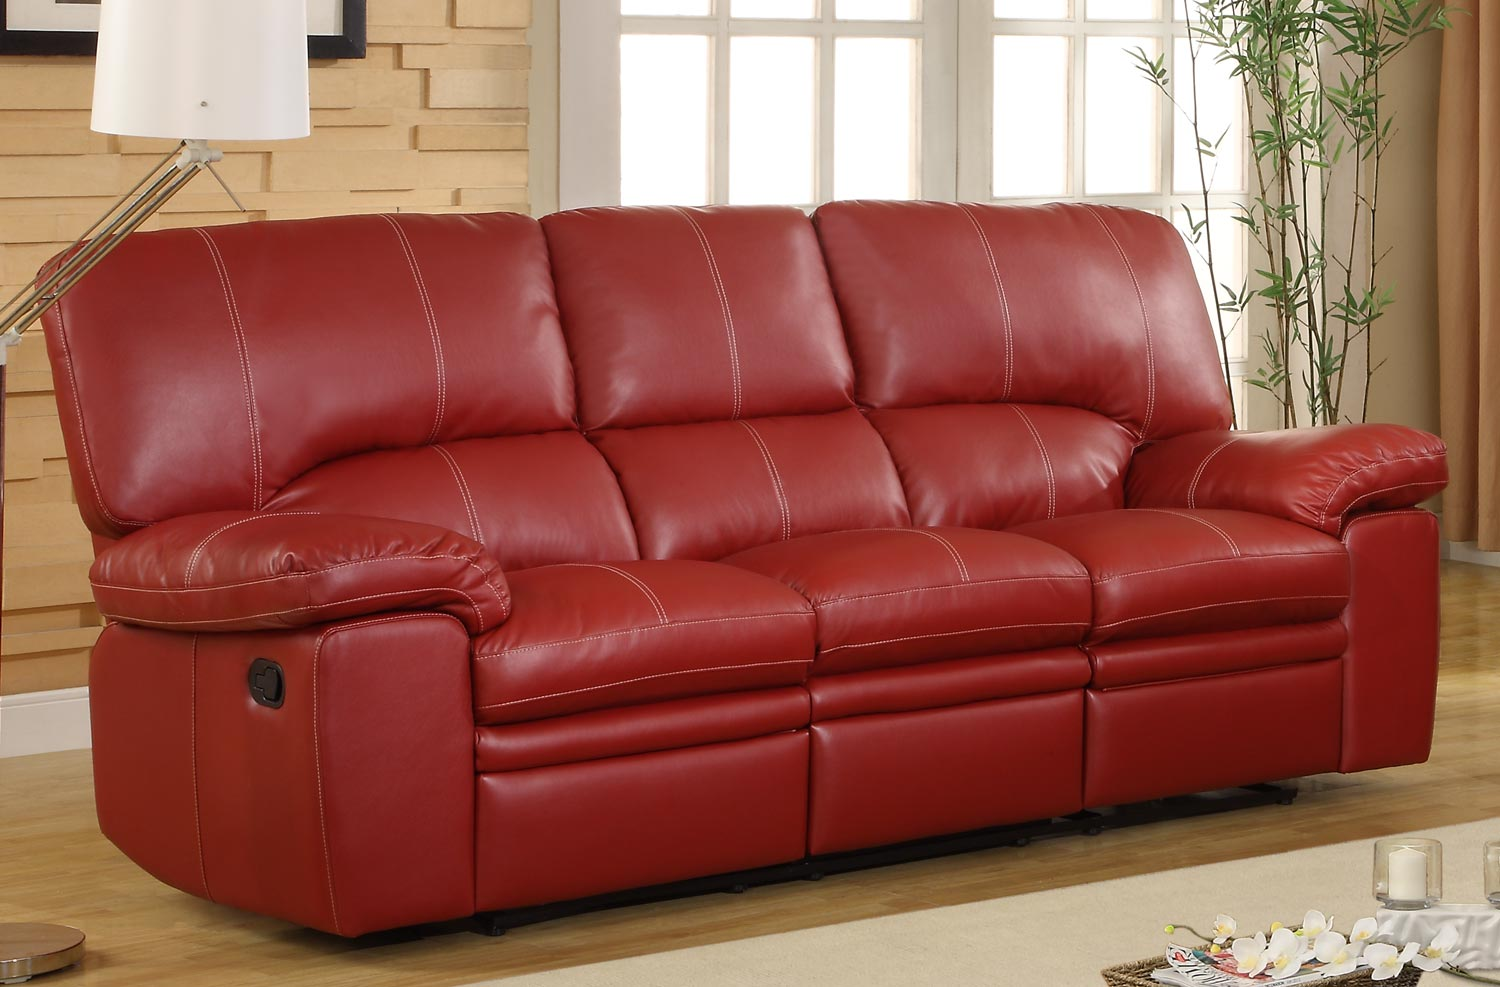 Homelegance kendrick double recliner sofa red bonded leather homelegance kendrick double recliner sofa red bonded leather match parisarafo Gallery